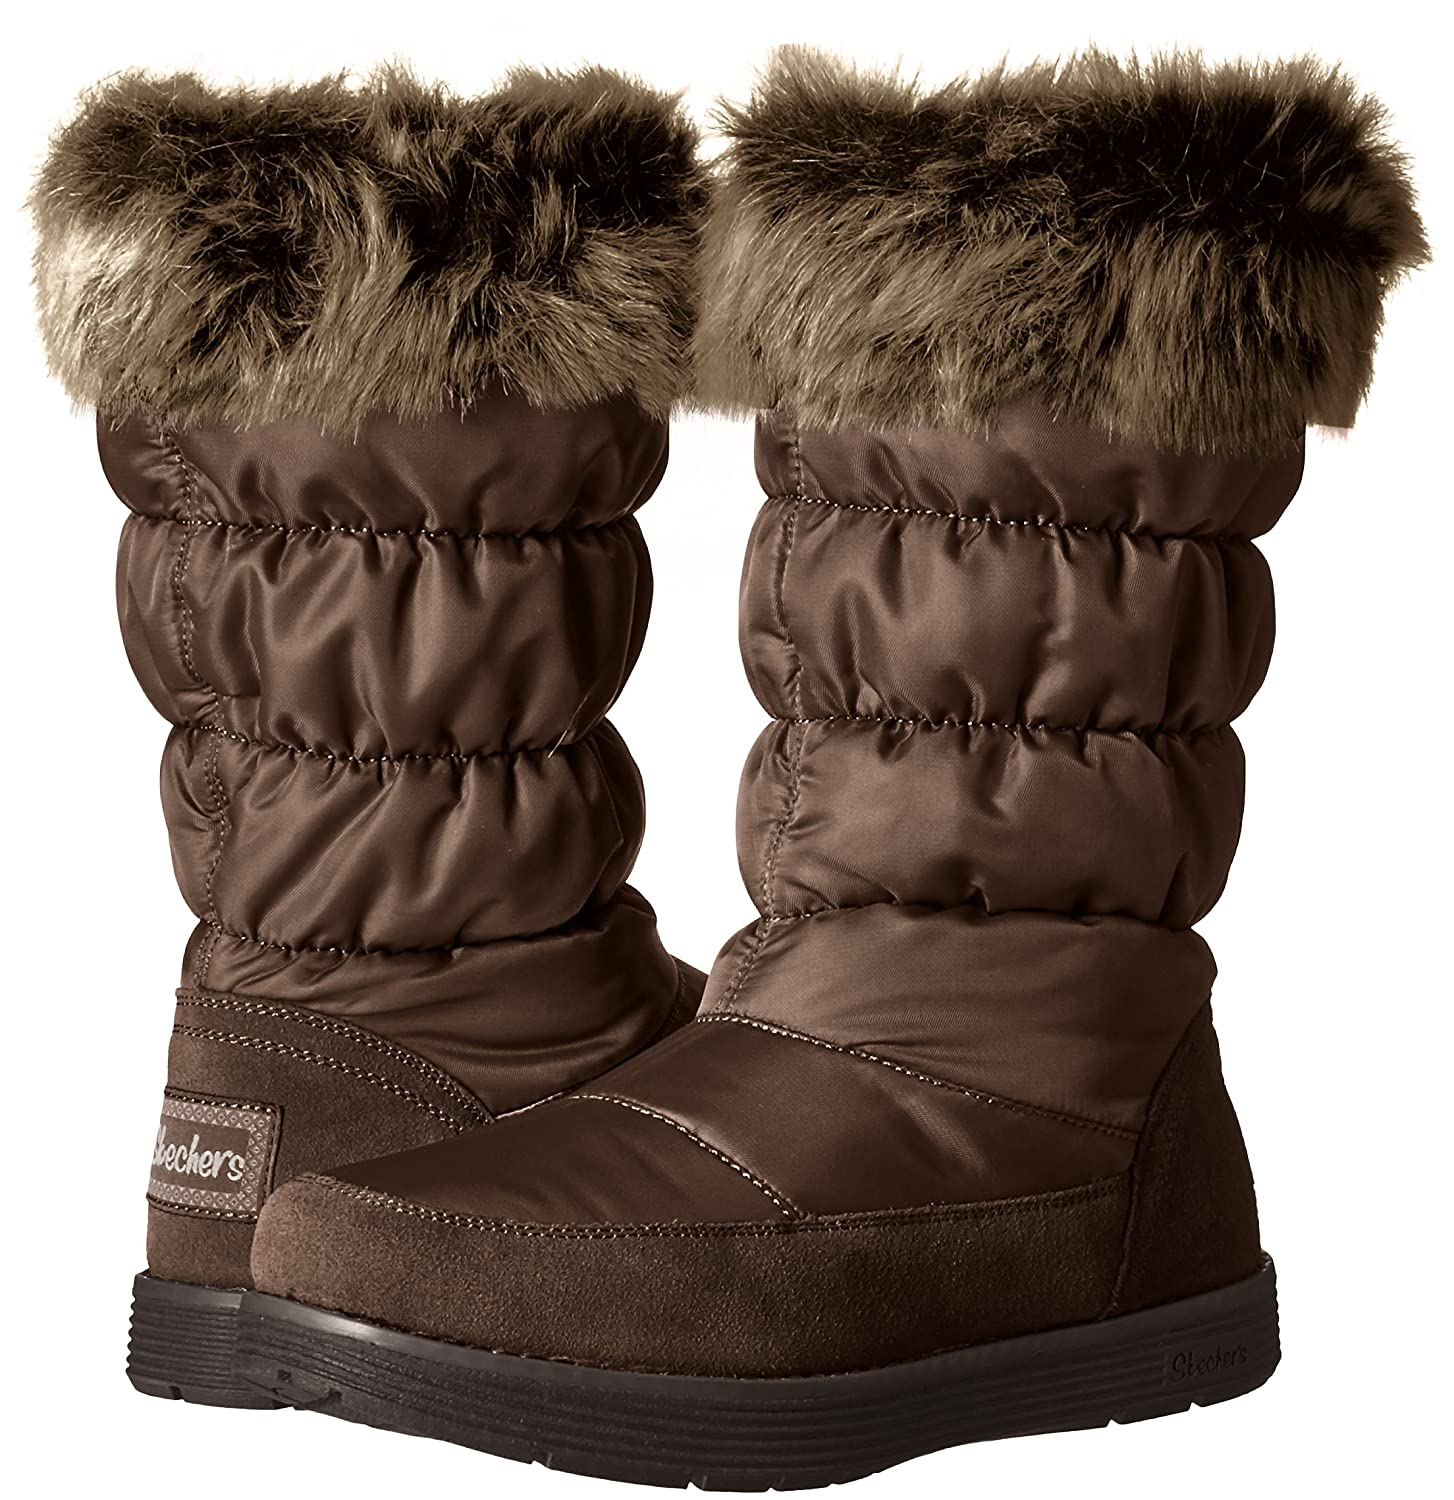 Skechers Boot Women's Adorbs-Nylon Quilted Snow Boot Skechers B01CH512PM 6.5 B(M) US|Chocolate 20285e